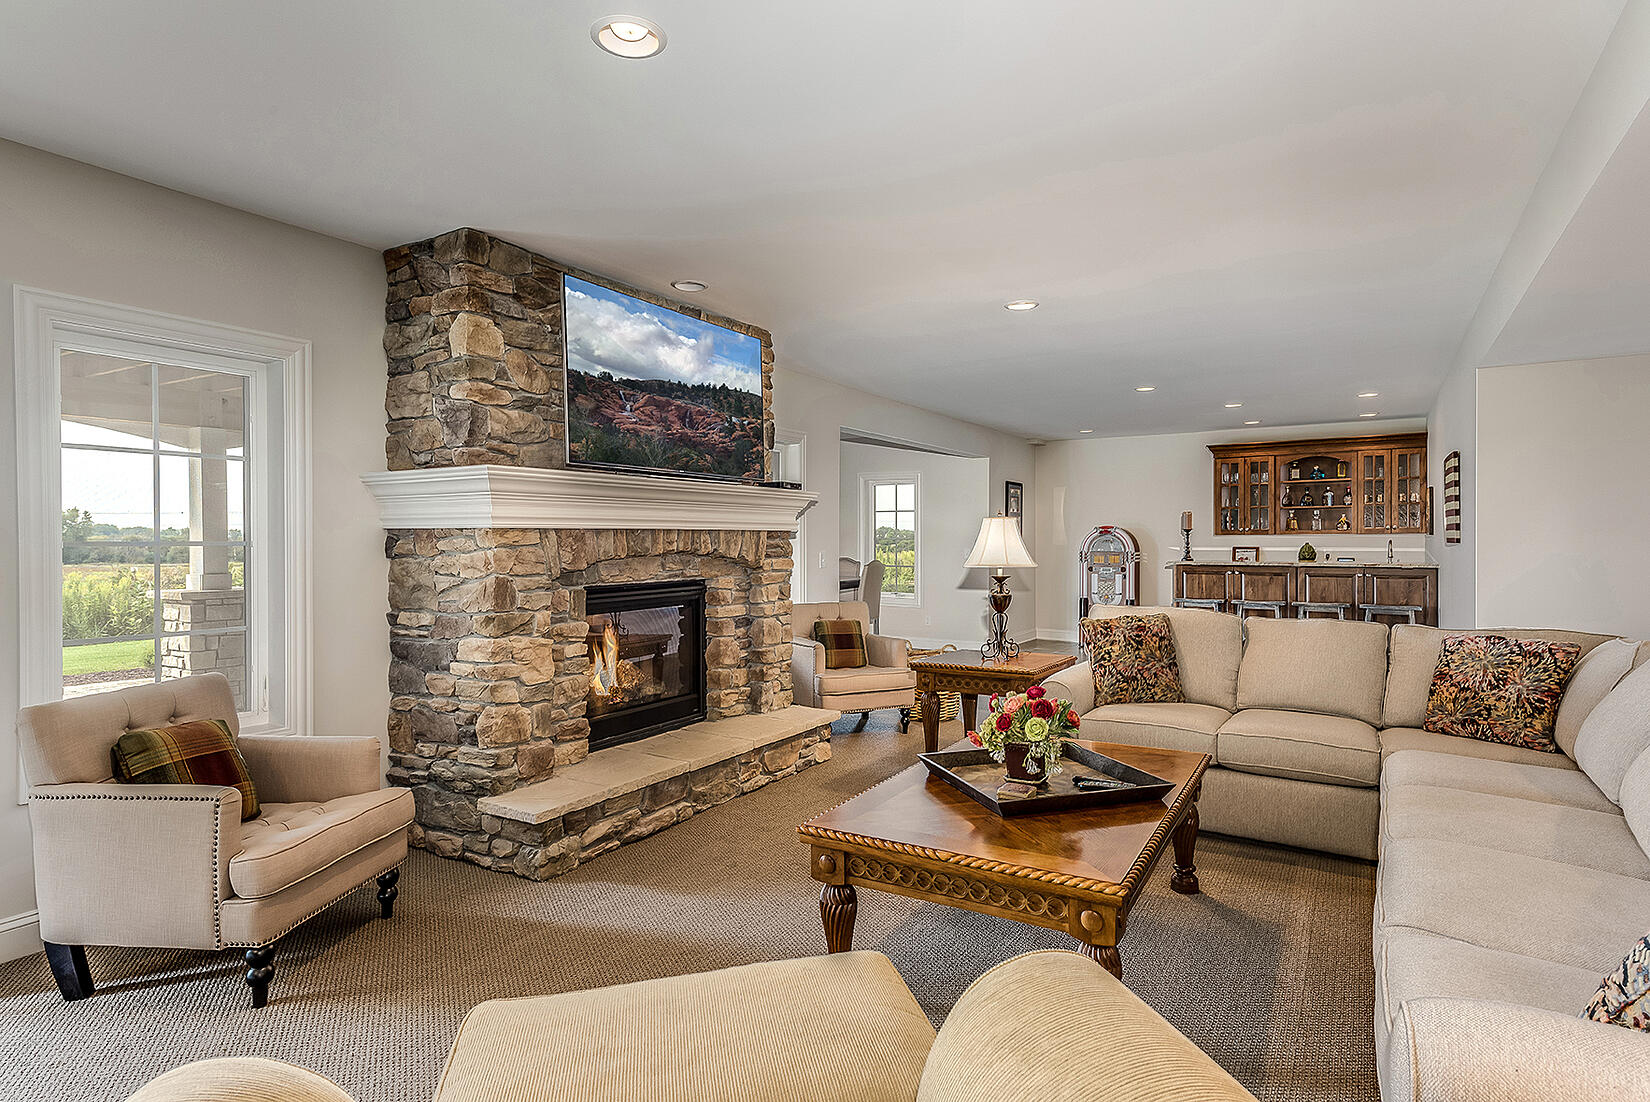 Beautiful basement remodel with fireplace and bar, perfect for the whole family.